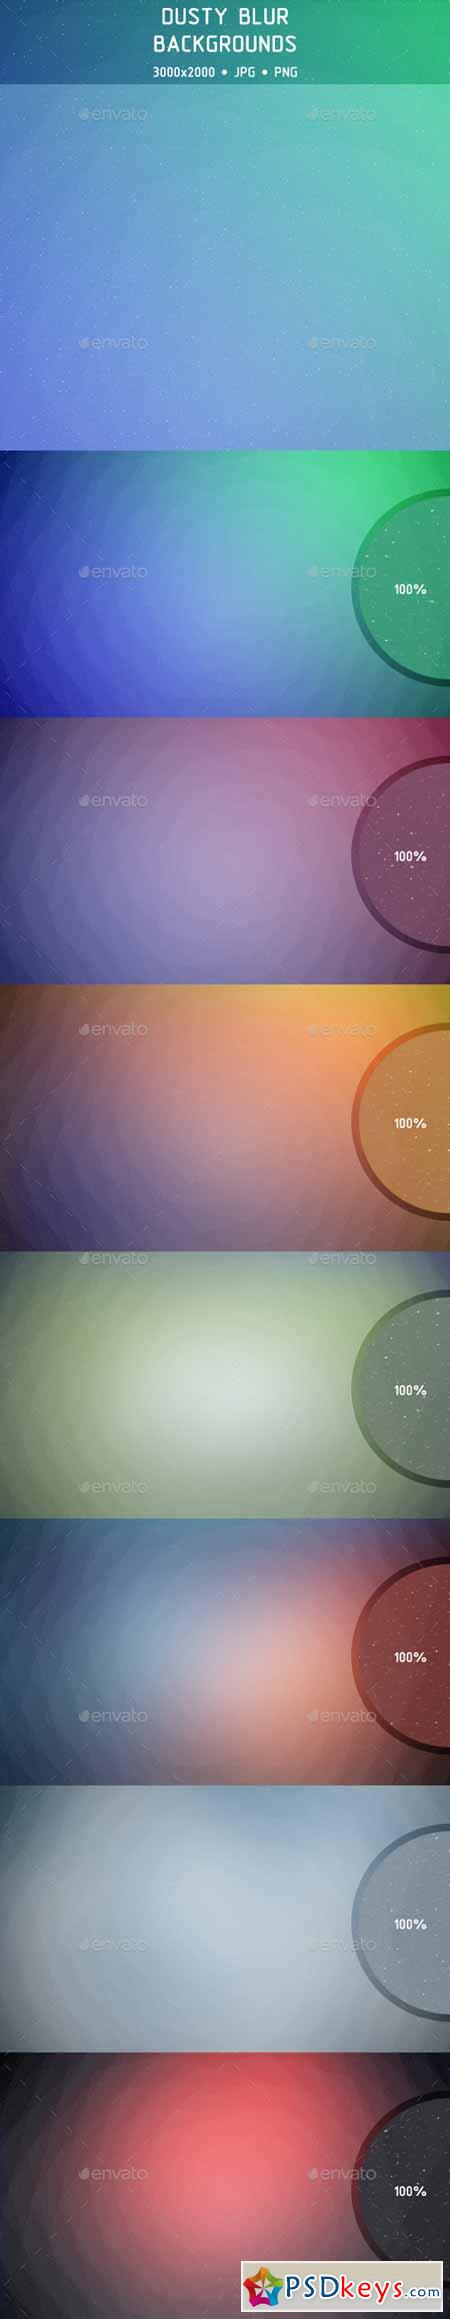 Dusty Blur Backgrounds 10192533